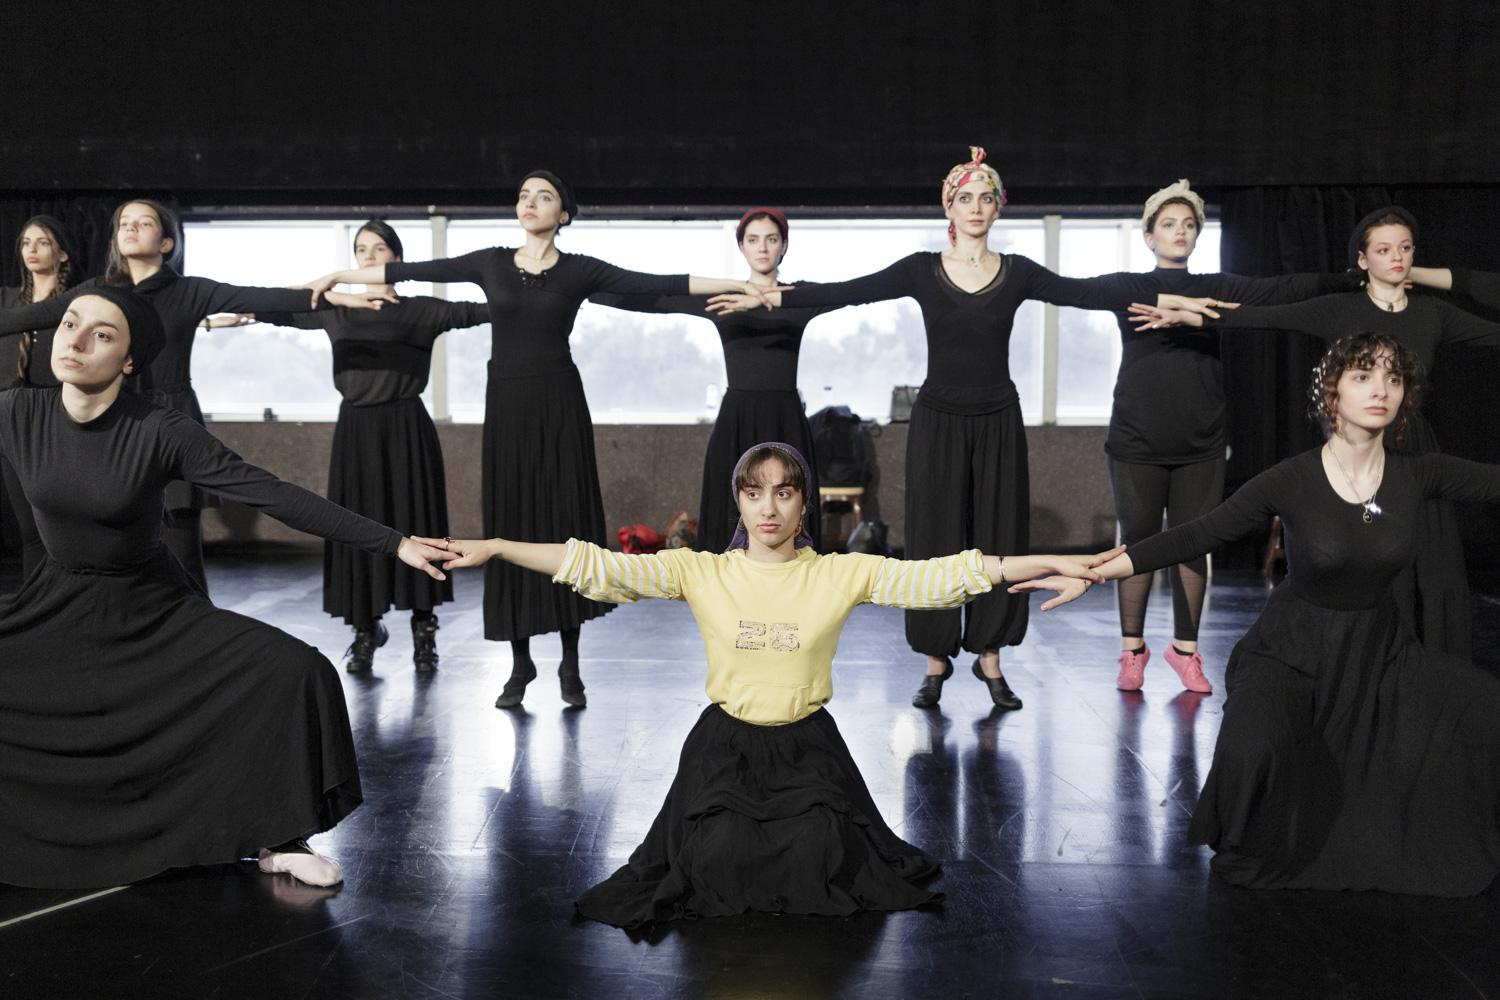 The crew rehearses for a show which got cancelled shortly before the premiere. A video of the dance rehearsals went viral on iranian media, which bashed the show. While rehearsing in Iranian public facilities, women have to wear wide, long and dark clothes.